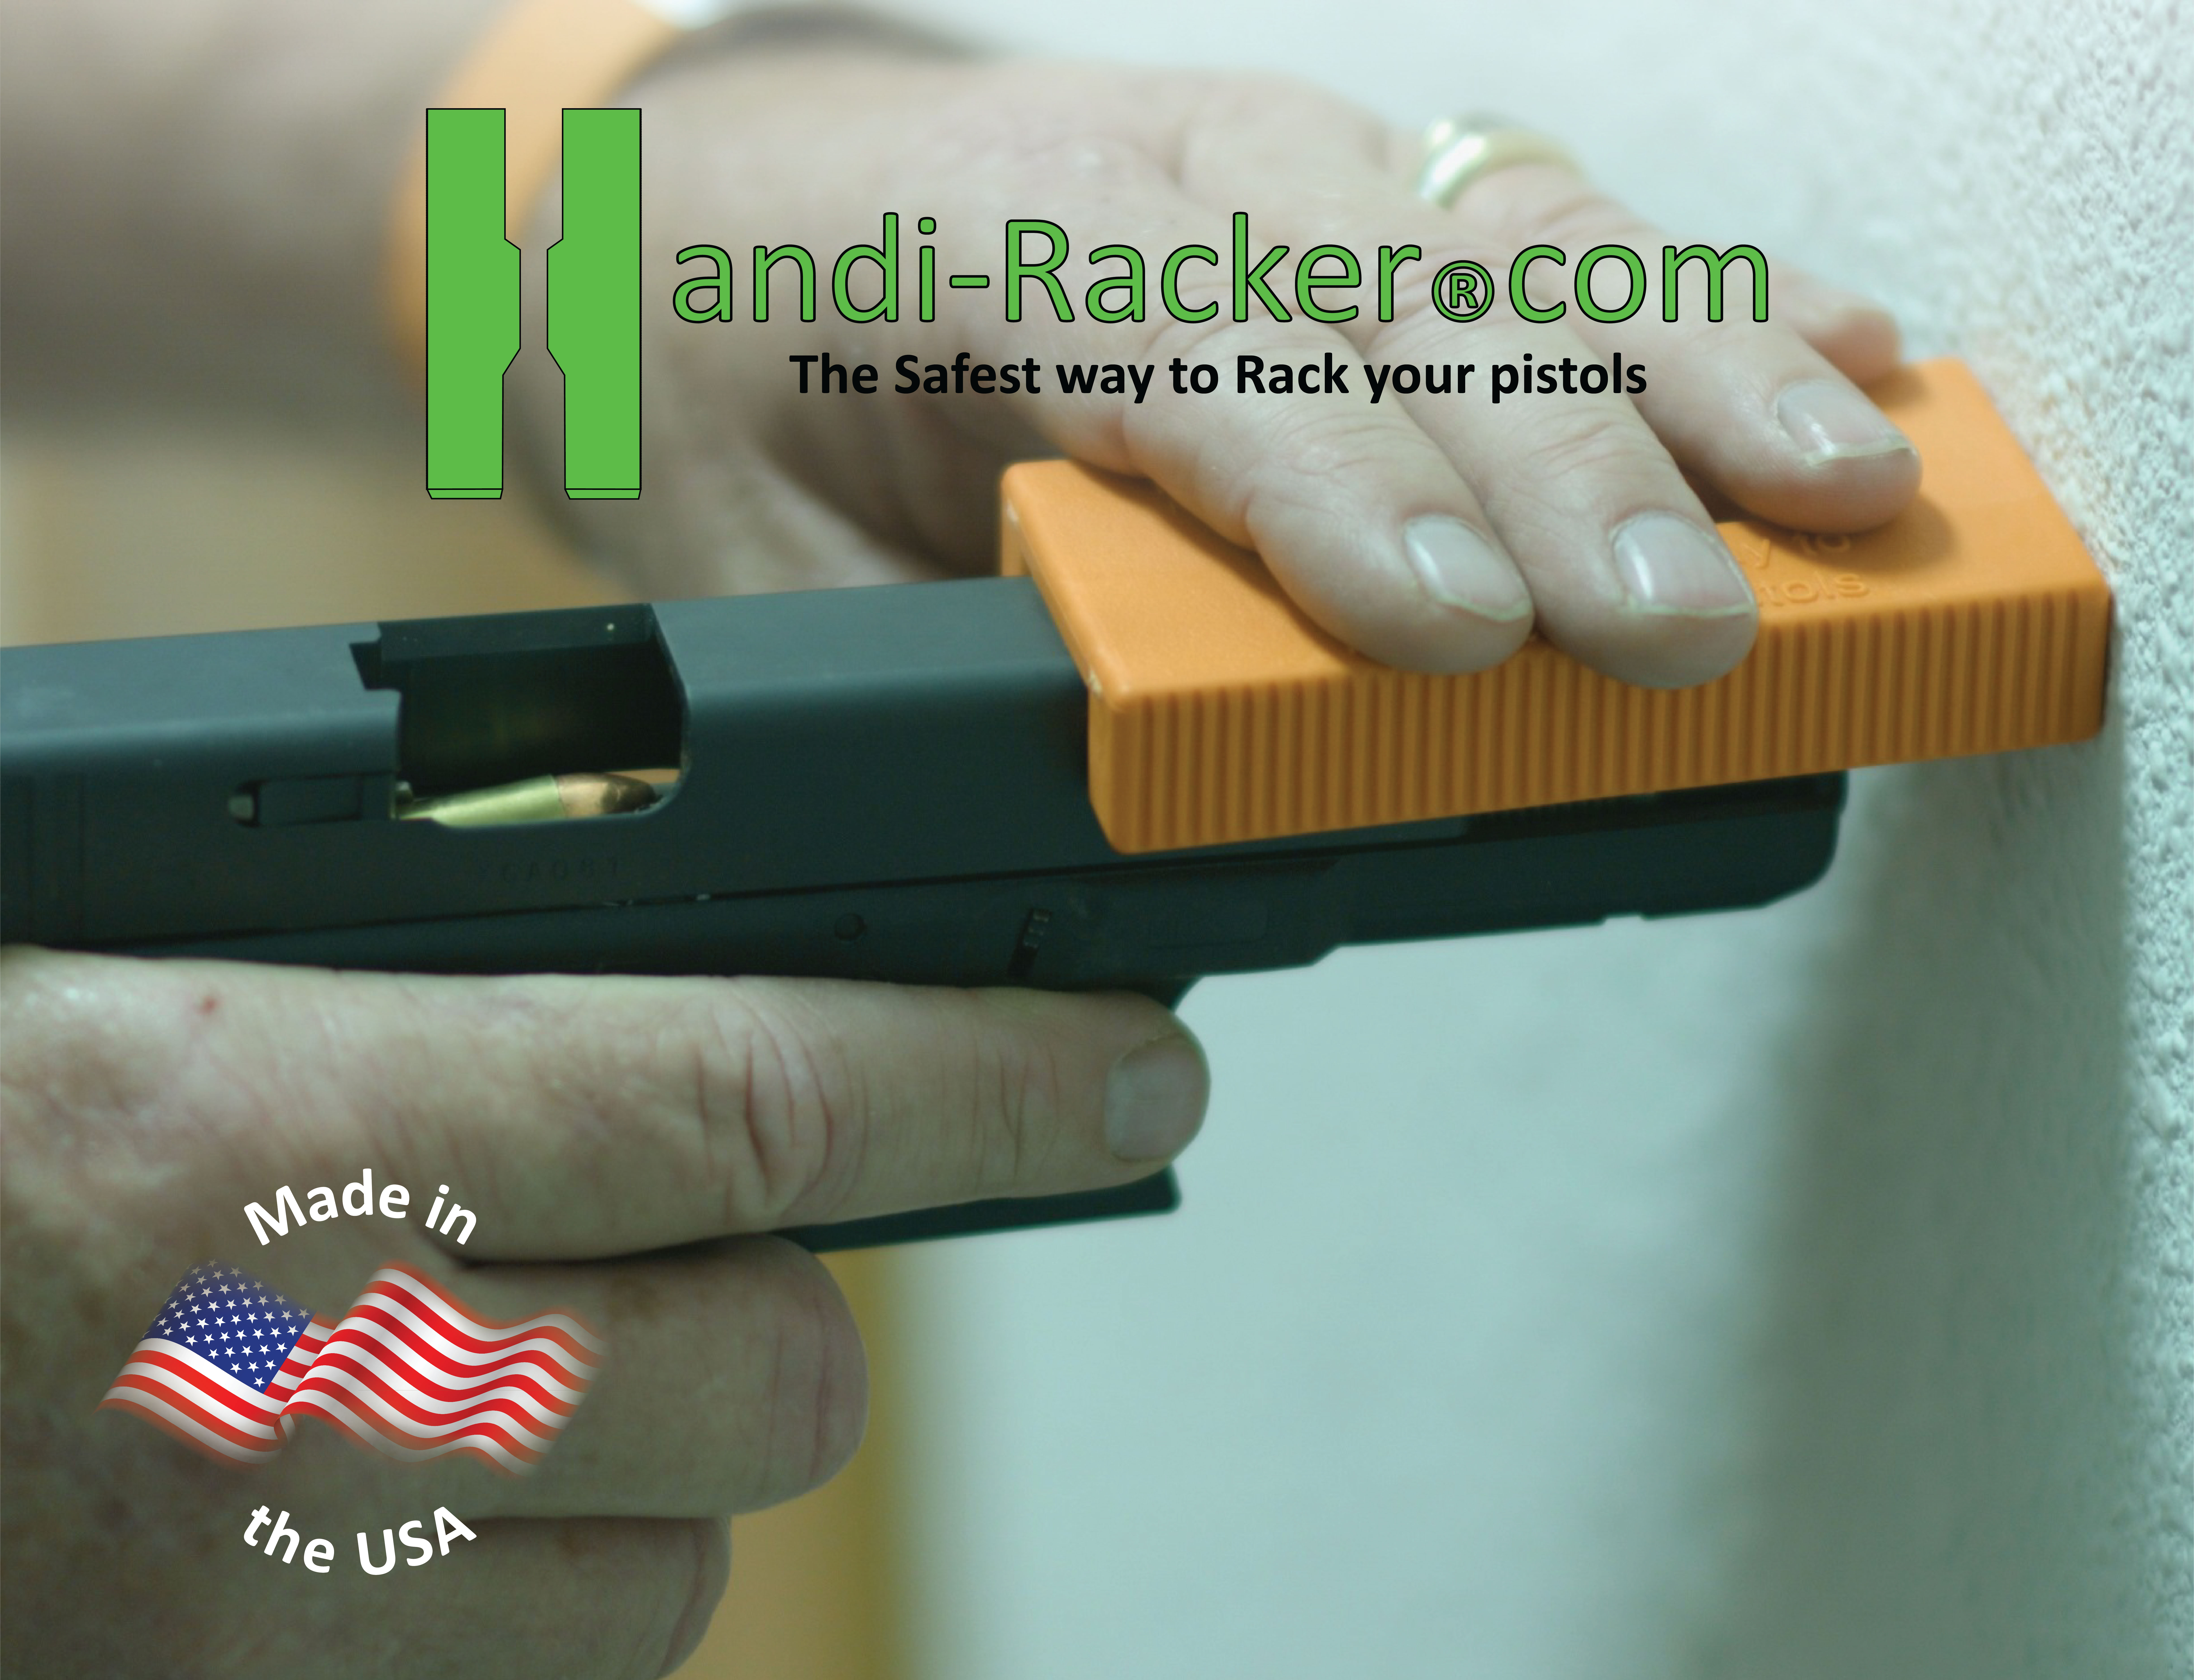 Handi-Racker 2 COMPACT Pistols Rack Your Pistols Clear Jams Made In USA Green